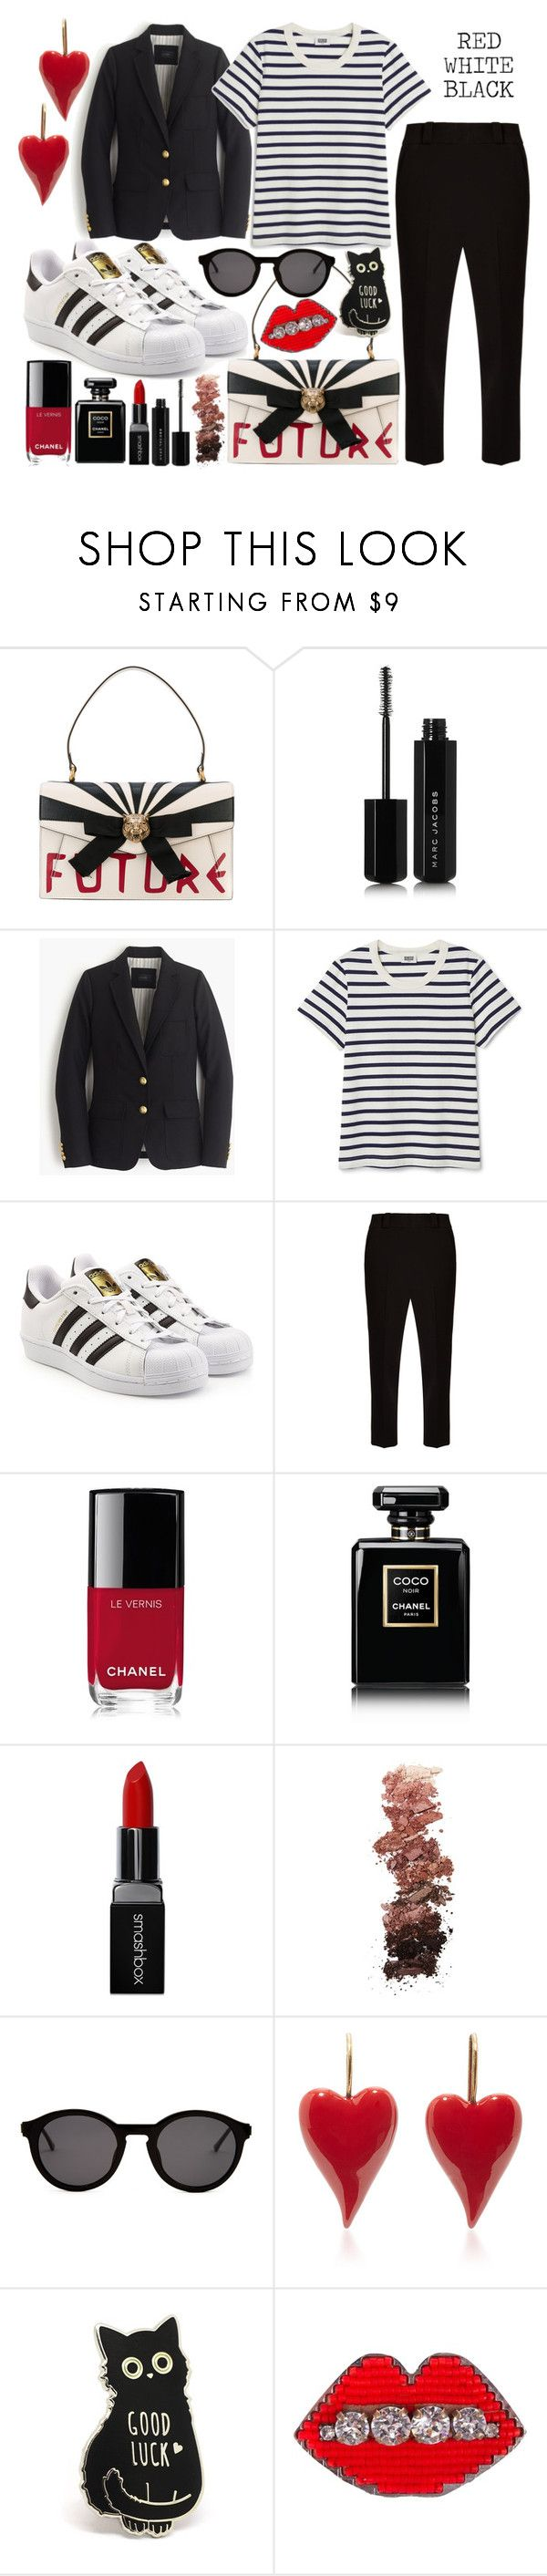 """""""Red, White & Black"""" by librarychic ❤ liked on Polyvore featuring Gucci, Marc Jacobs, J.Crew, adidas Originals, The Row, Chanel, Smashbox, L.A. Girl, Thierry Lasry and Shourouk"""